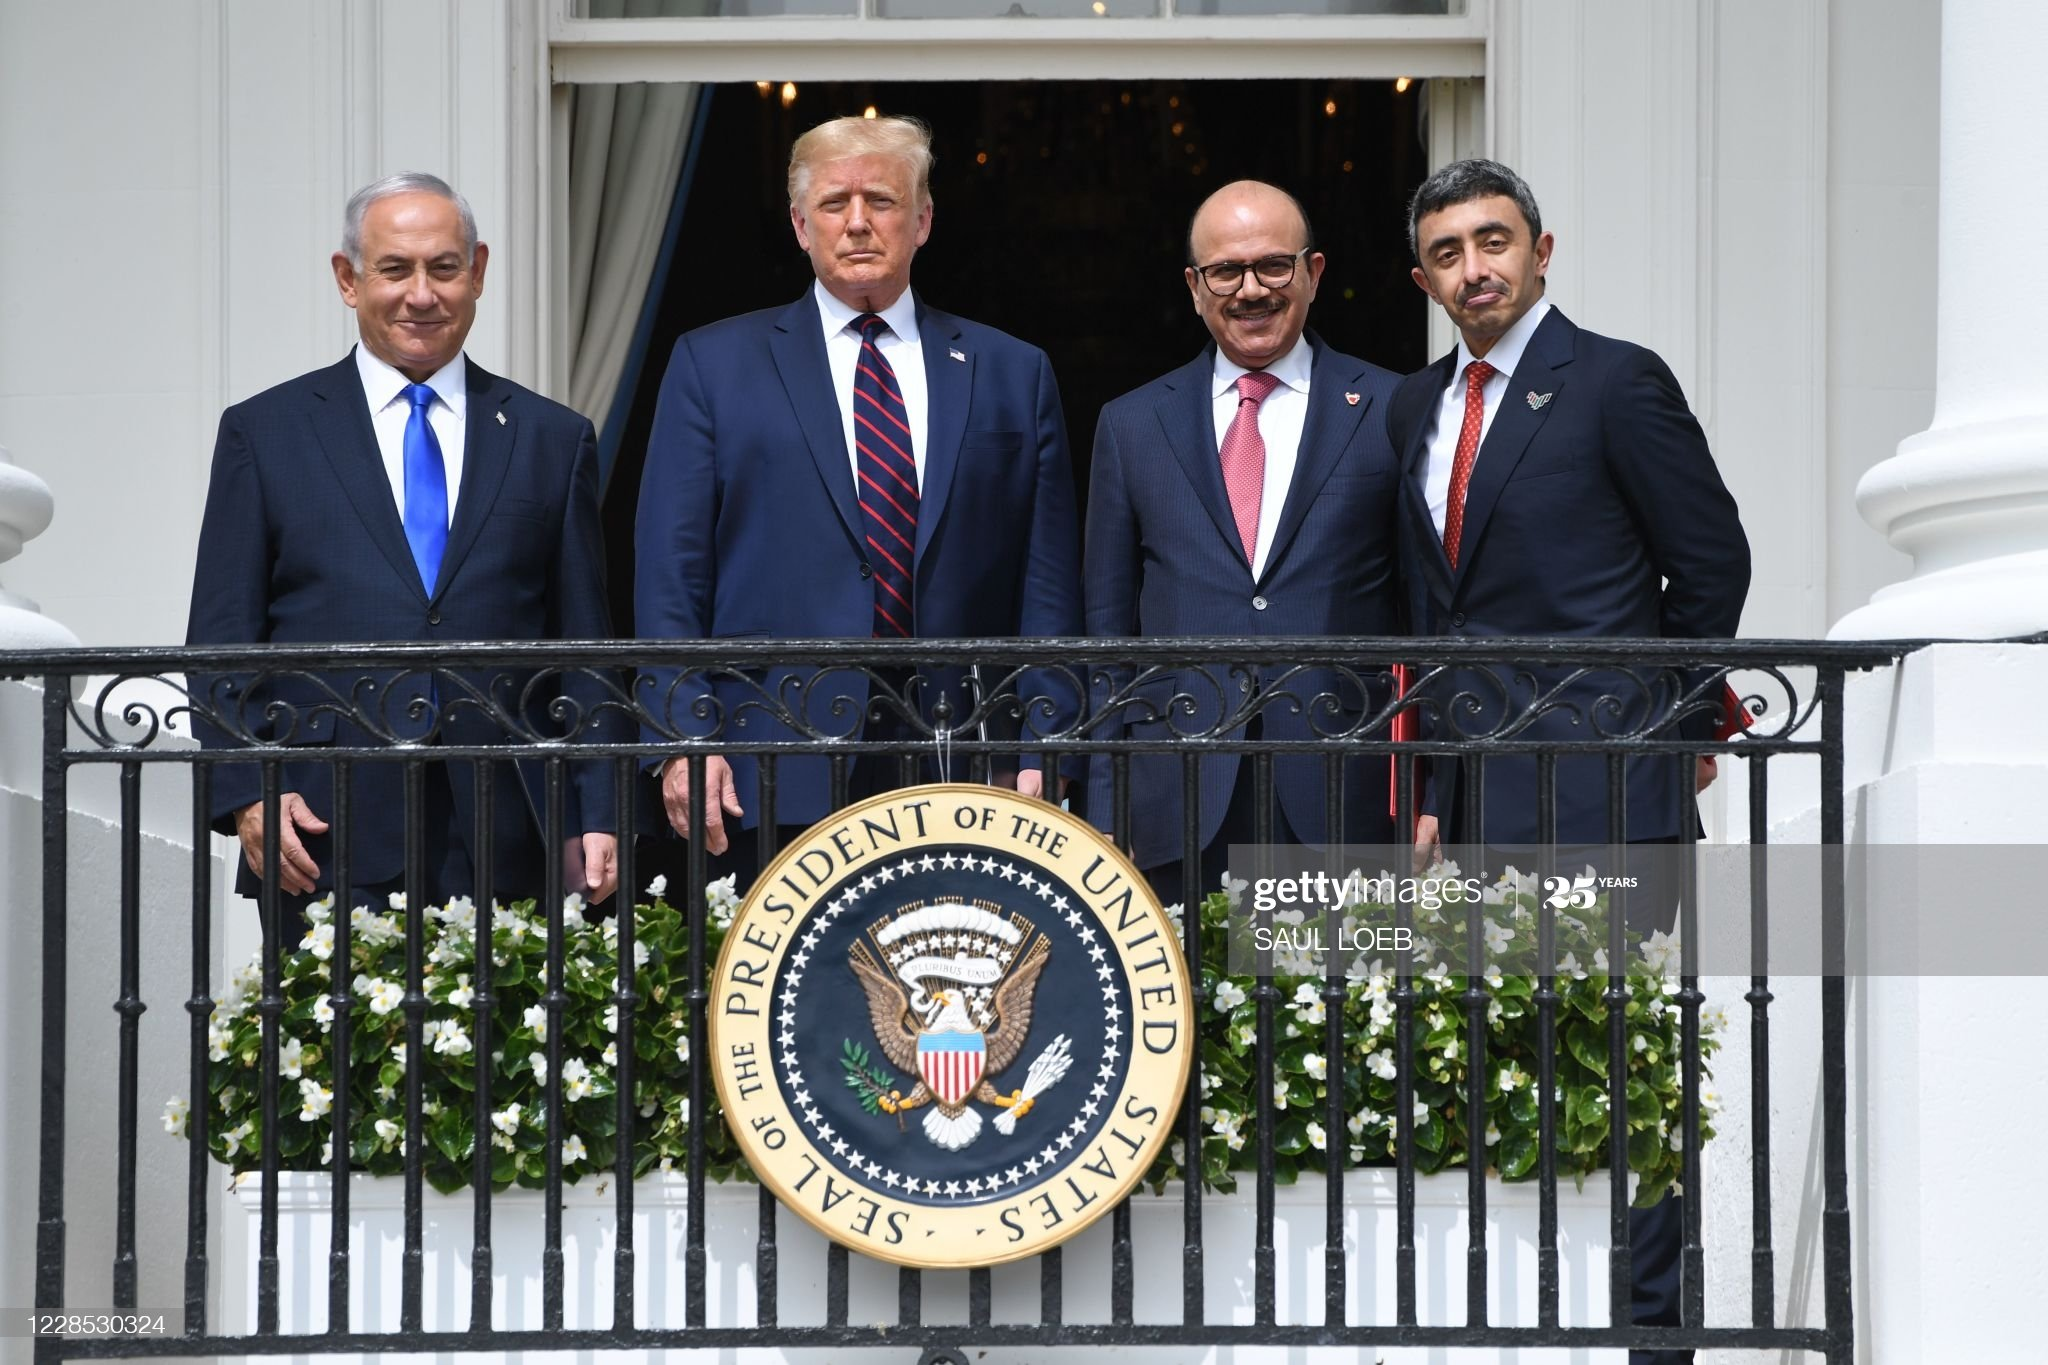 Israel Joins the Arab Club, With U.S. Sponsorship | Opinion